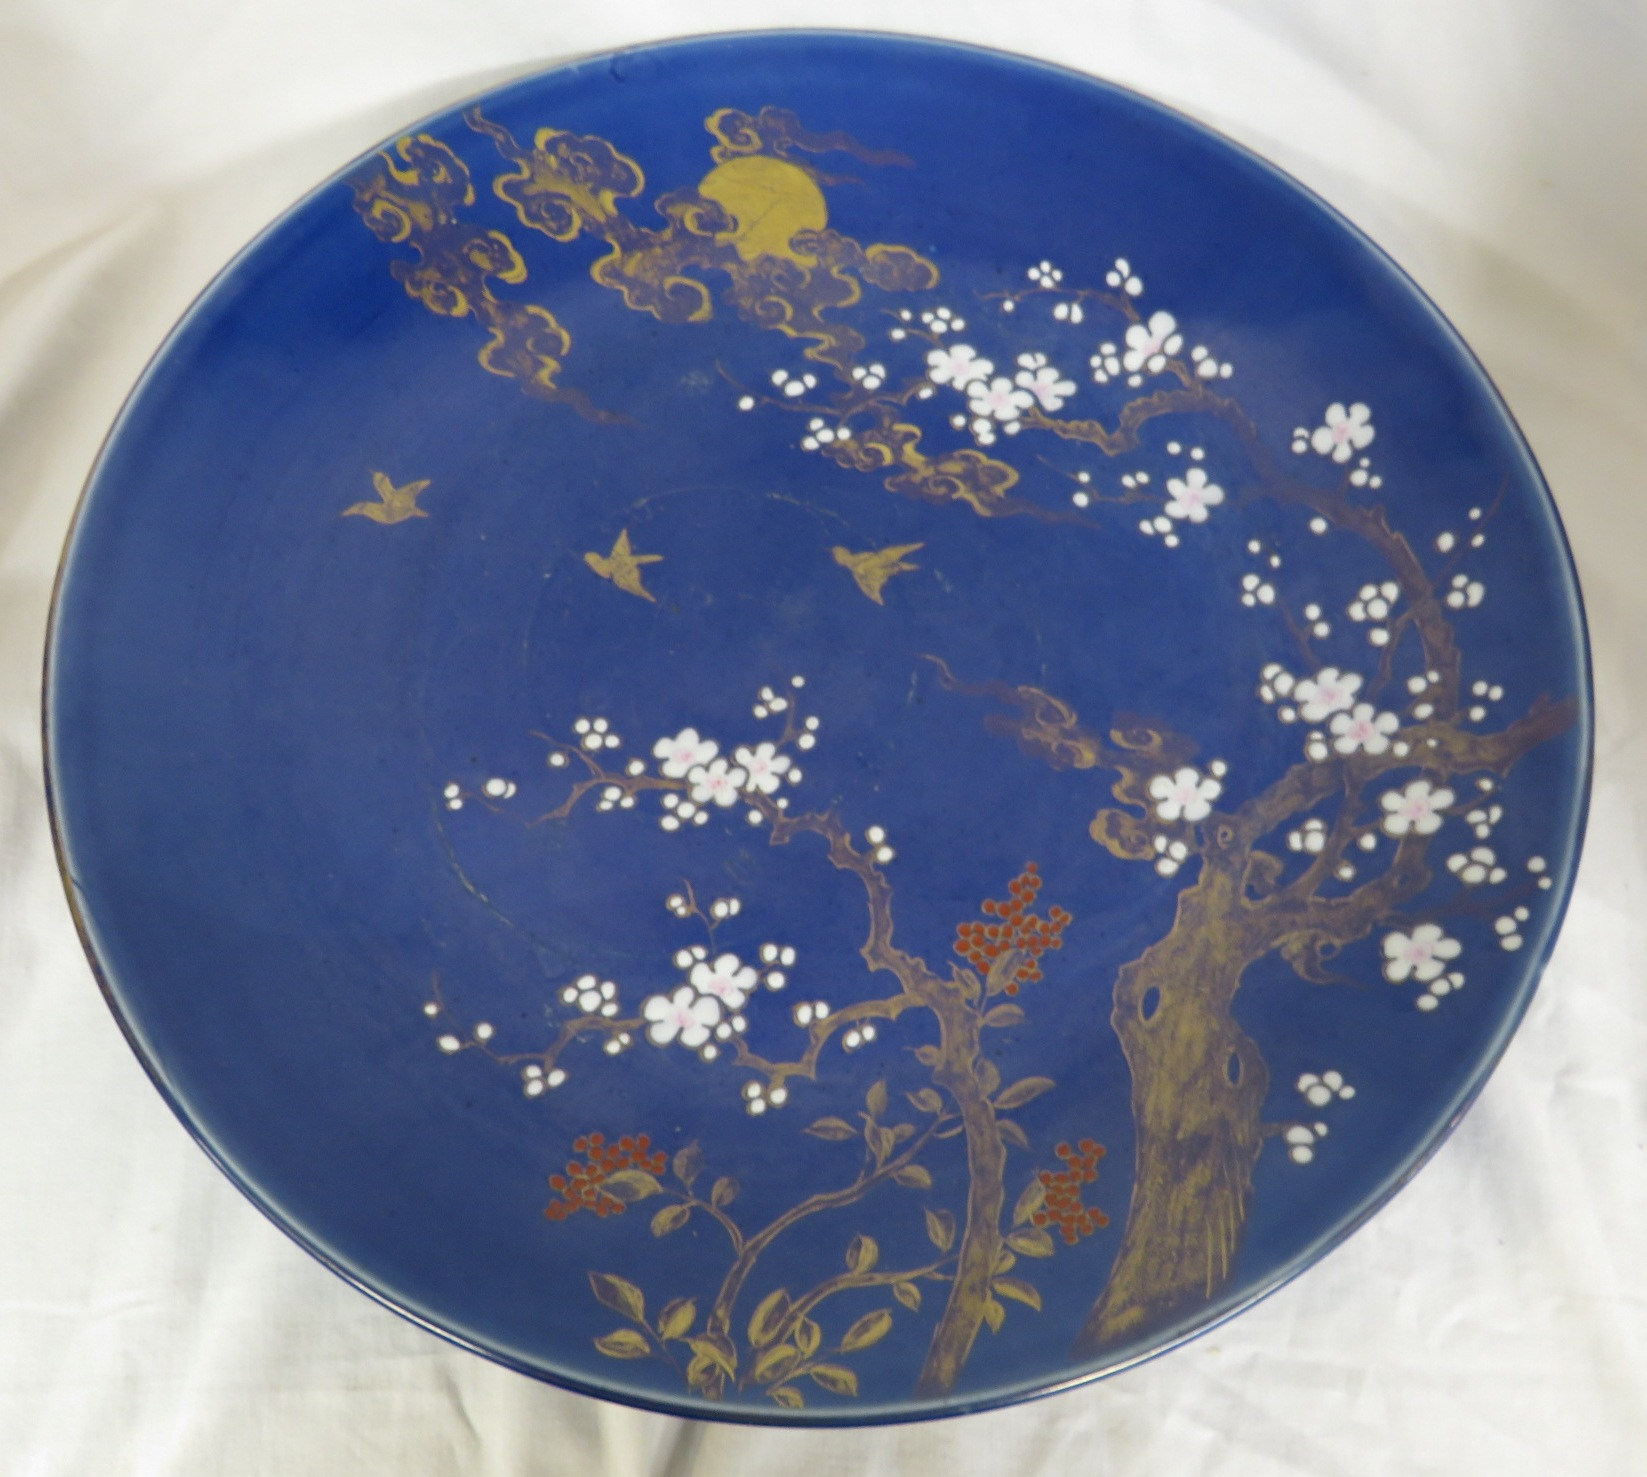 Lot 103 - Large blue ground porcelain dish decorated in enamels and gilding with moon and clouds over a